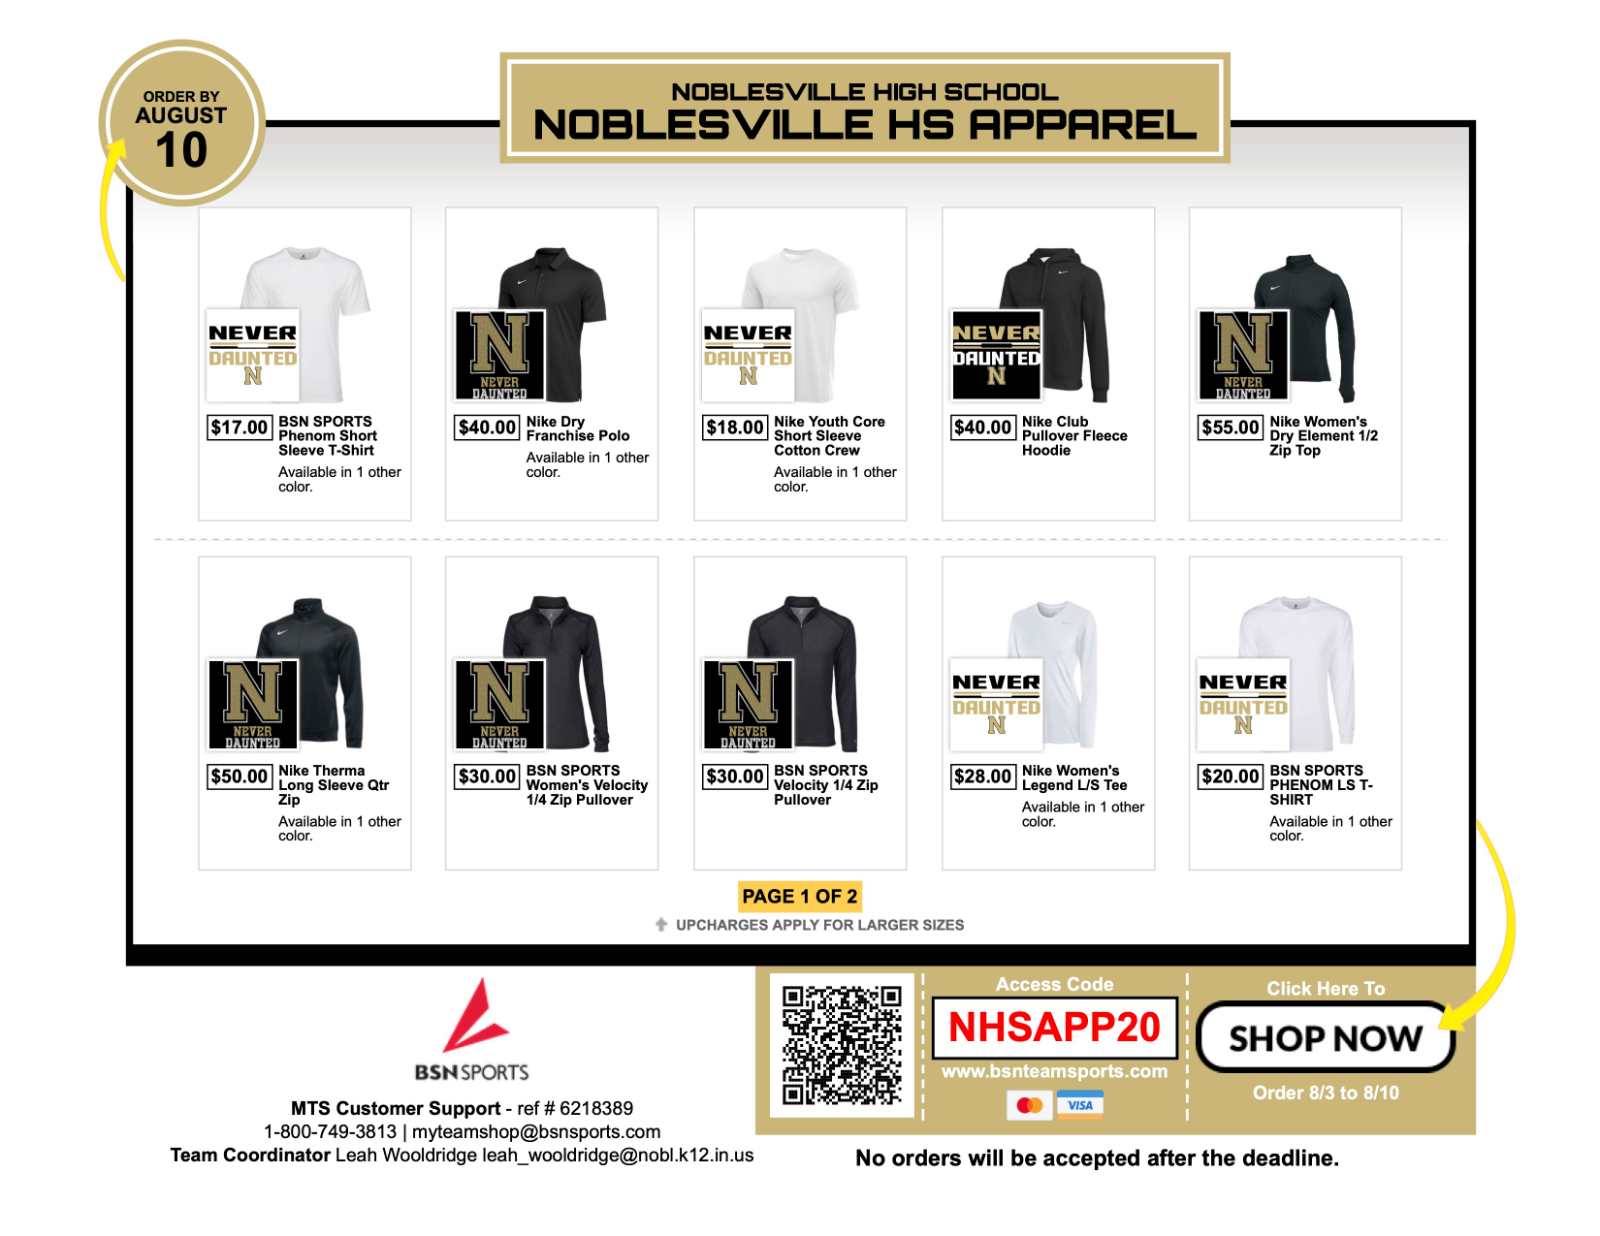 Apparel Store Open Through August 10